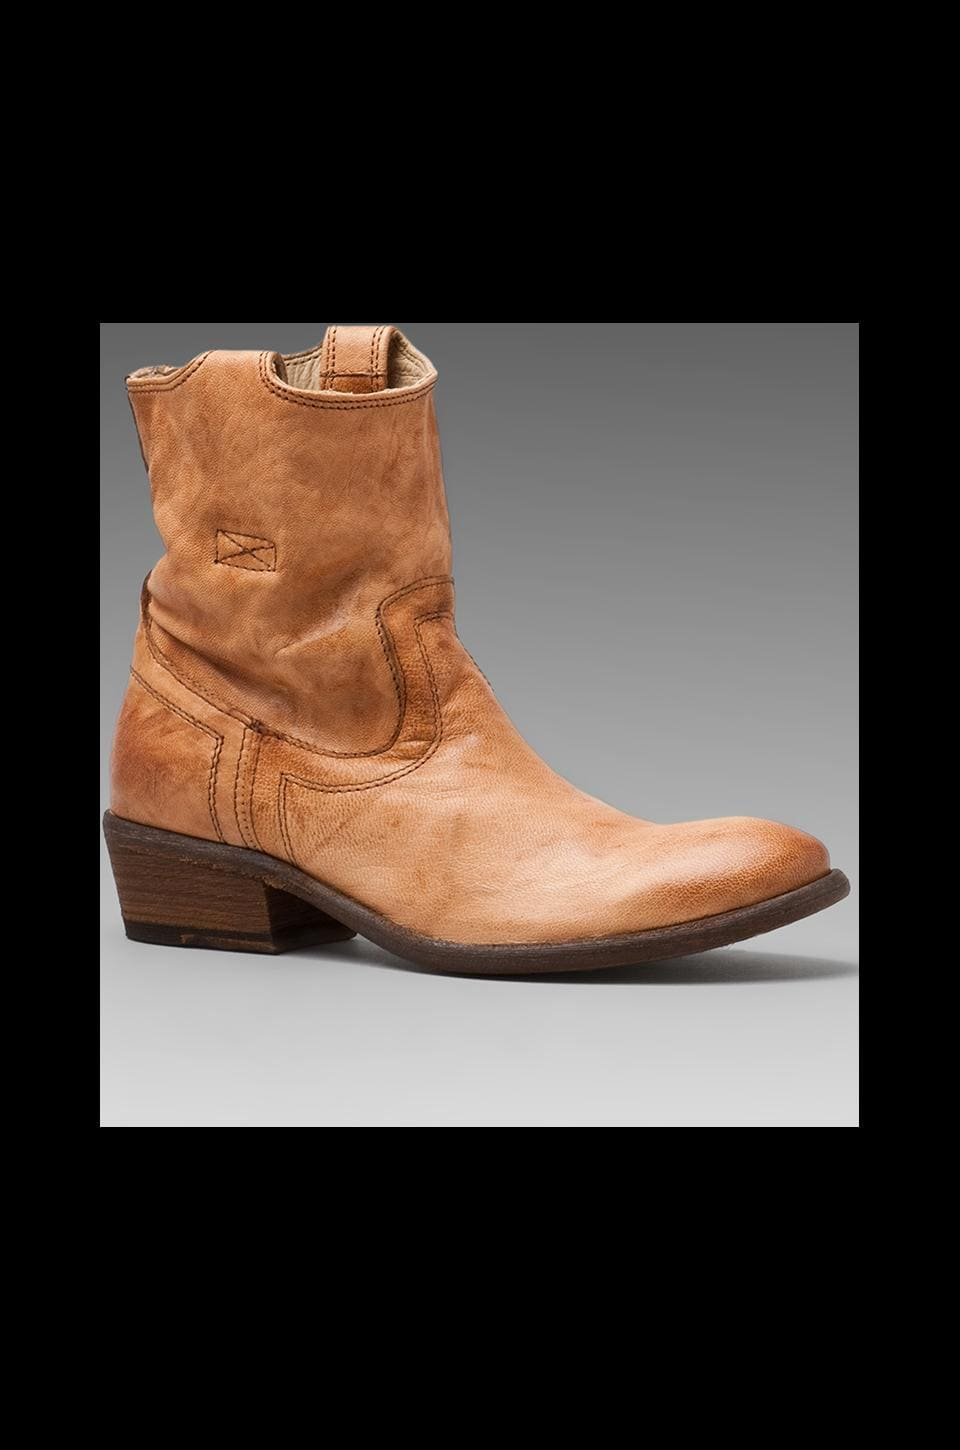 Frye Carson Tab Short Boot in Camel